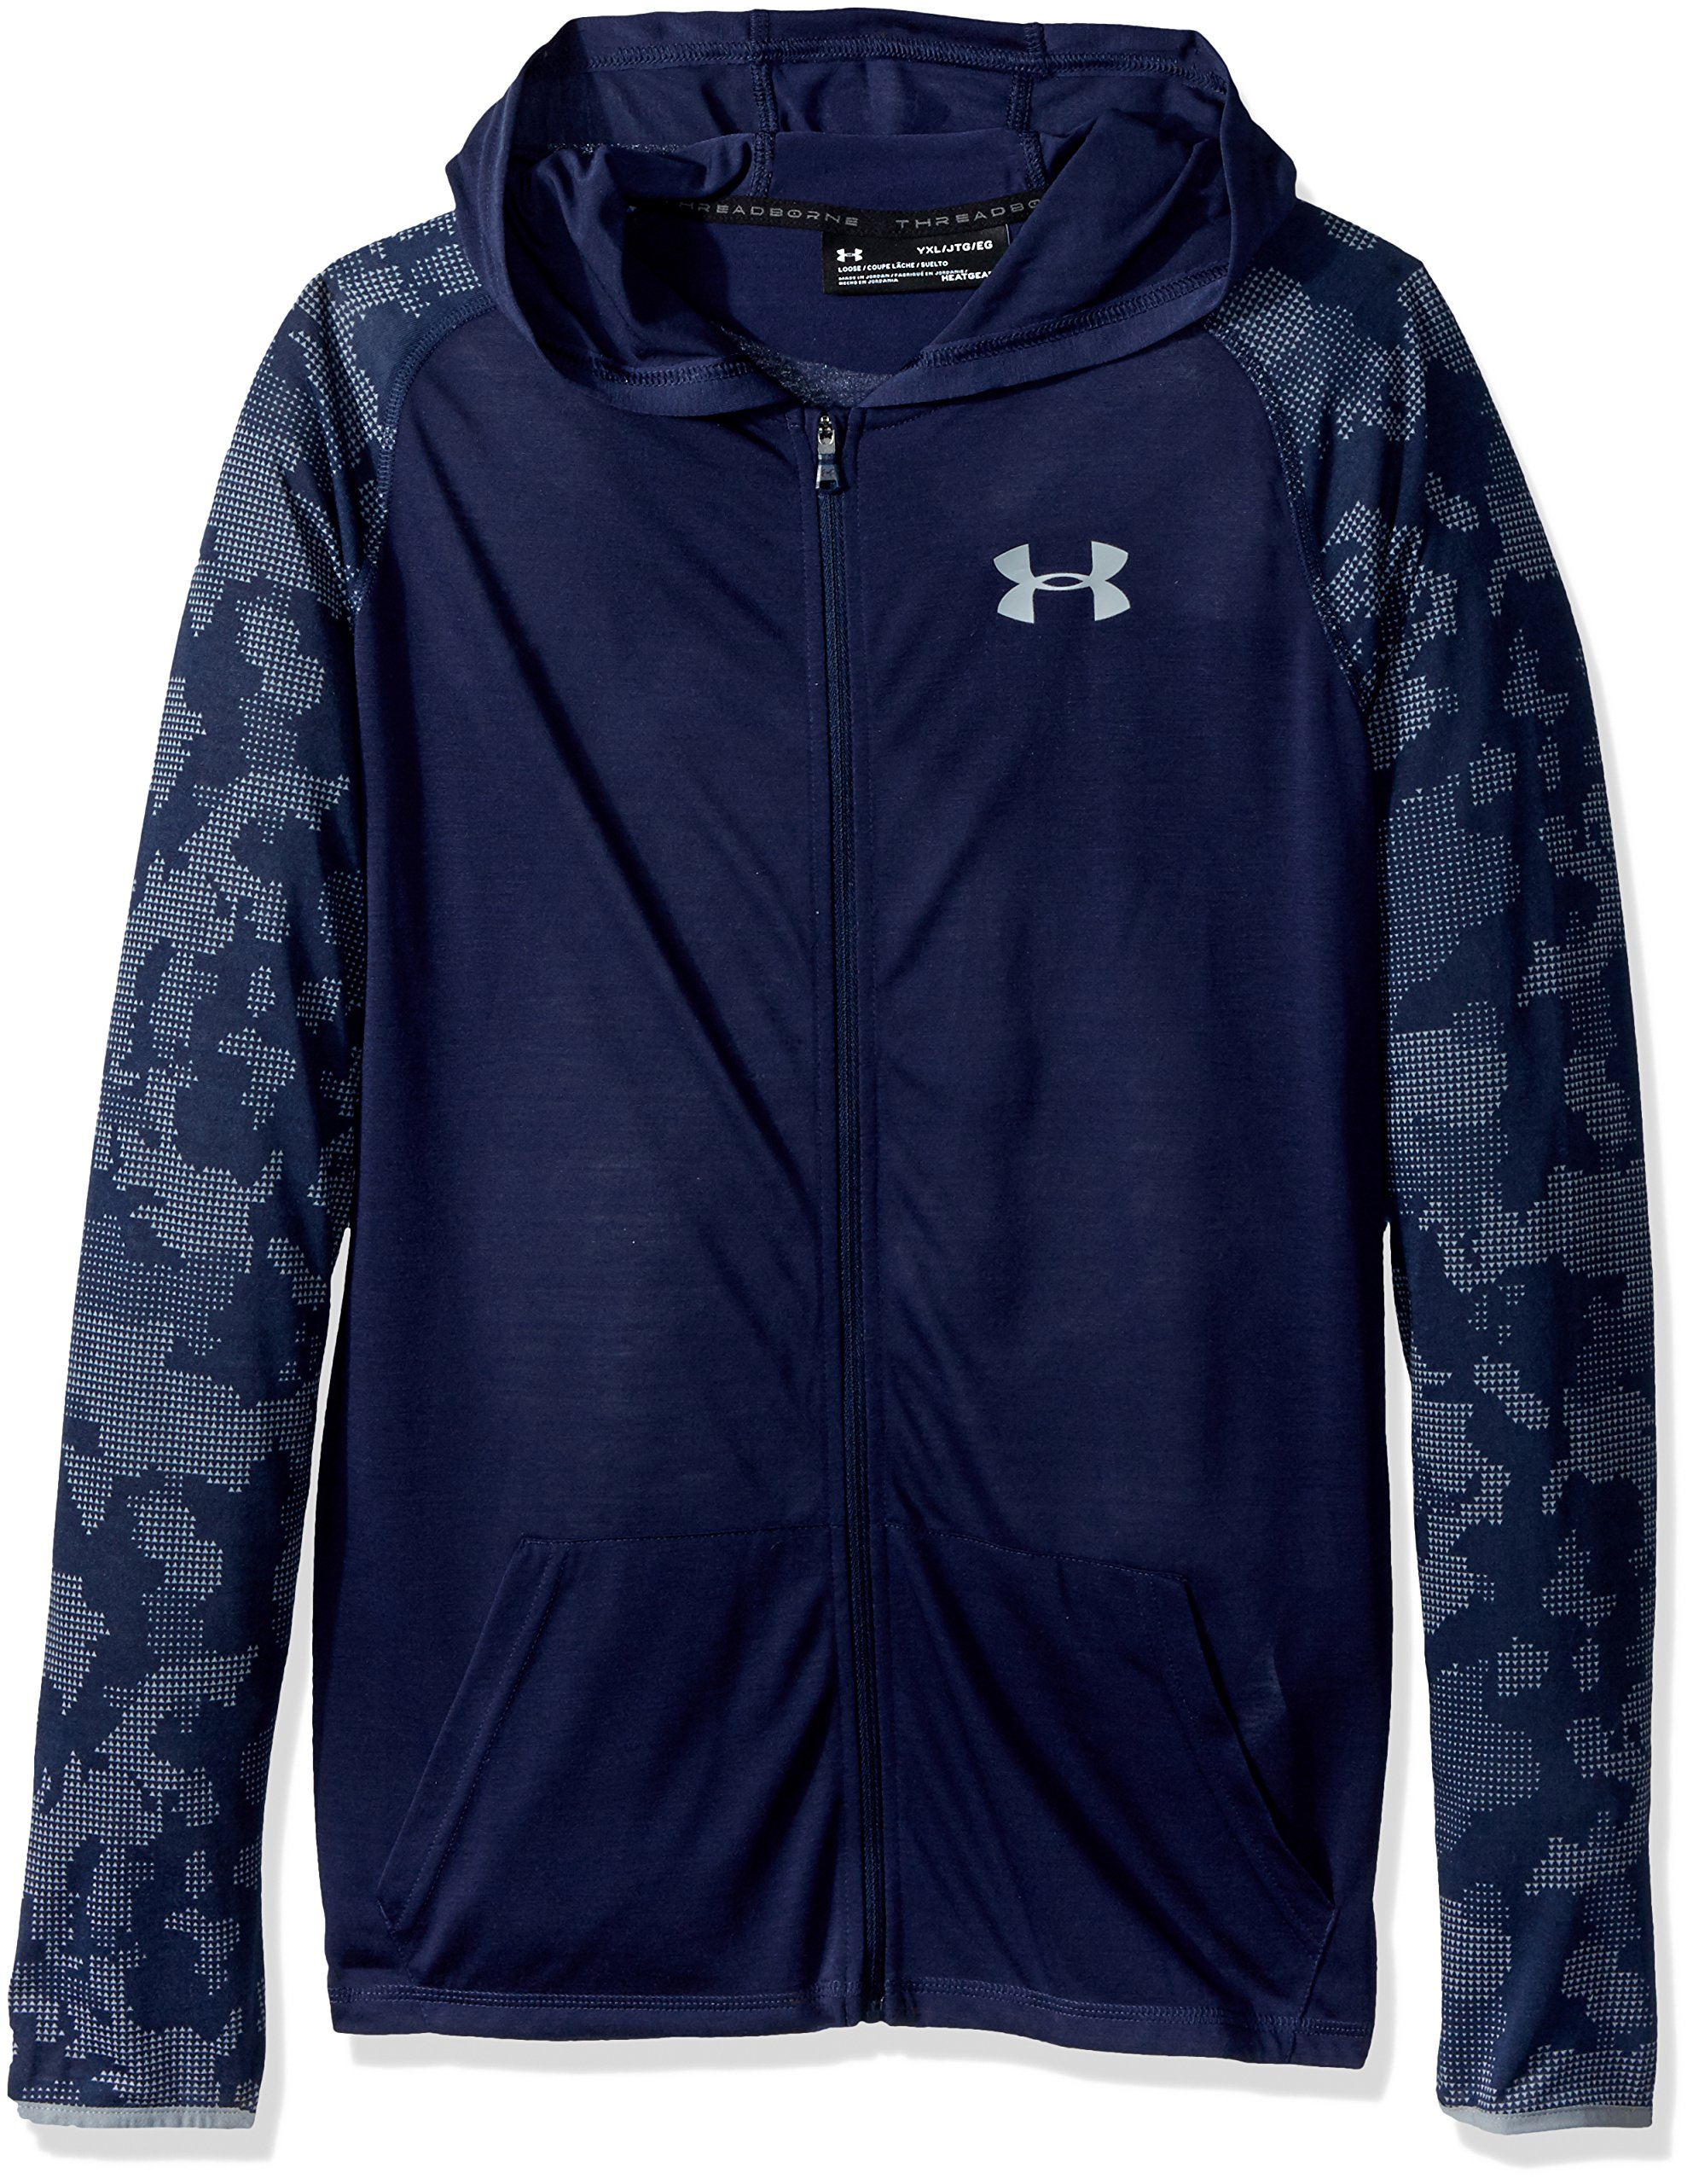 Under Armour Boys Threadborne Full Zip Hoodie,Midnight Navy /Steel, Youth Small